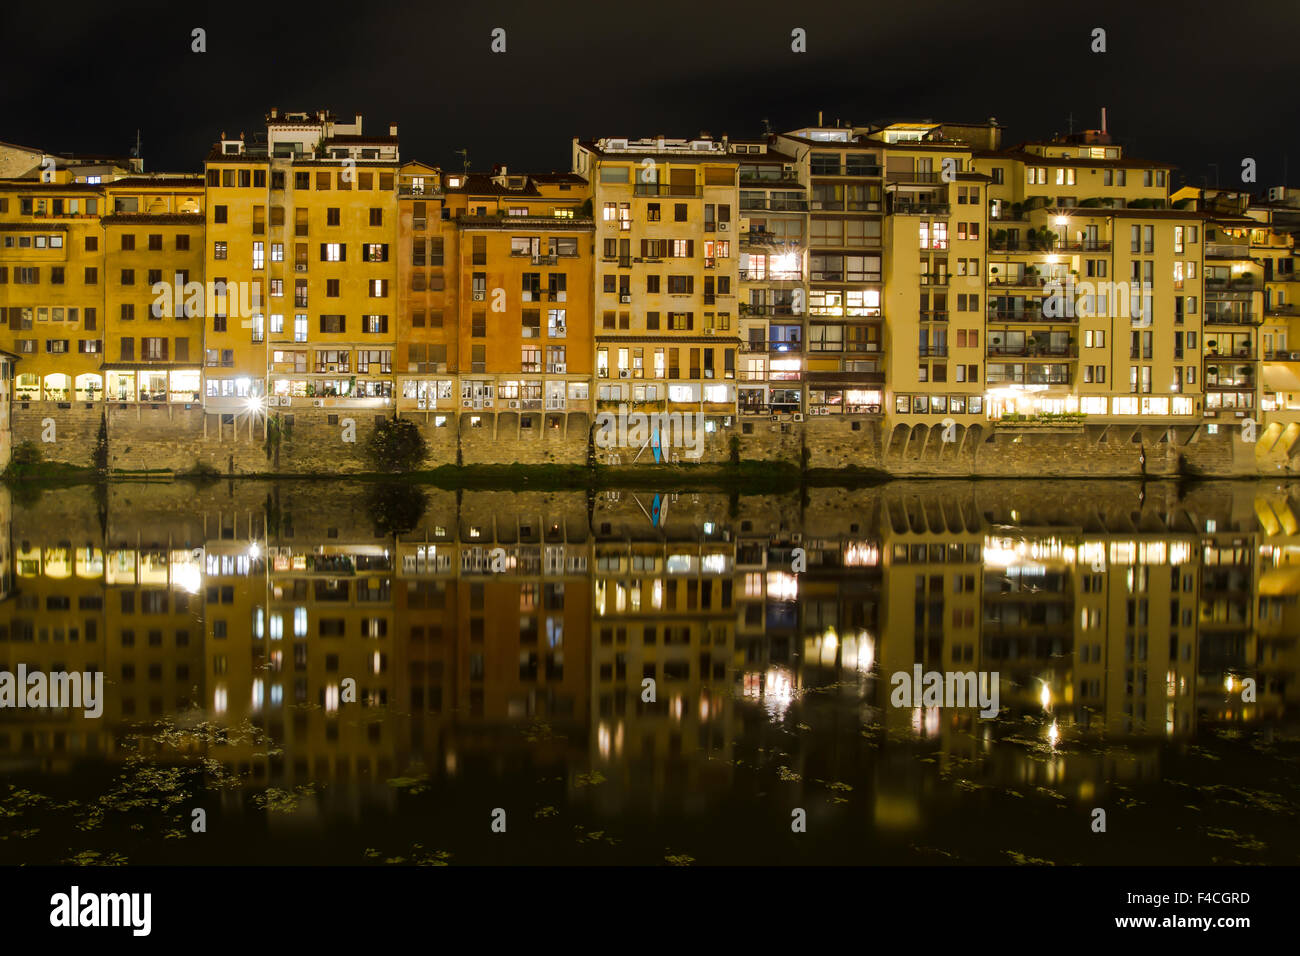 Old houses and tower on the embankment of the River Arno and Ponte Vecchio at night, Florence, Tuscany, Italy - Stock Image